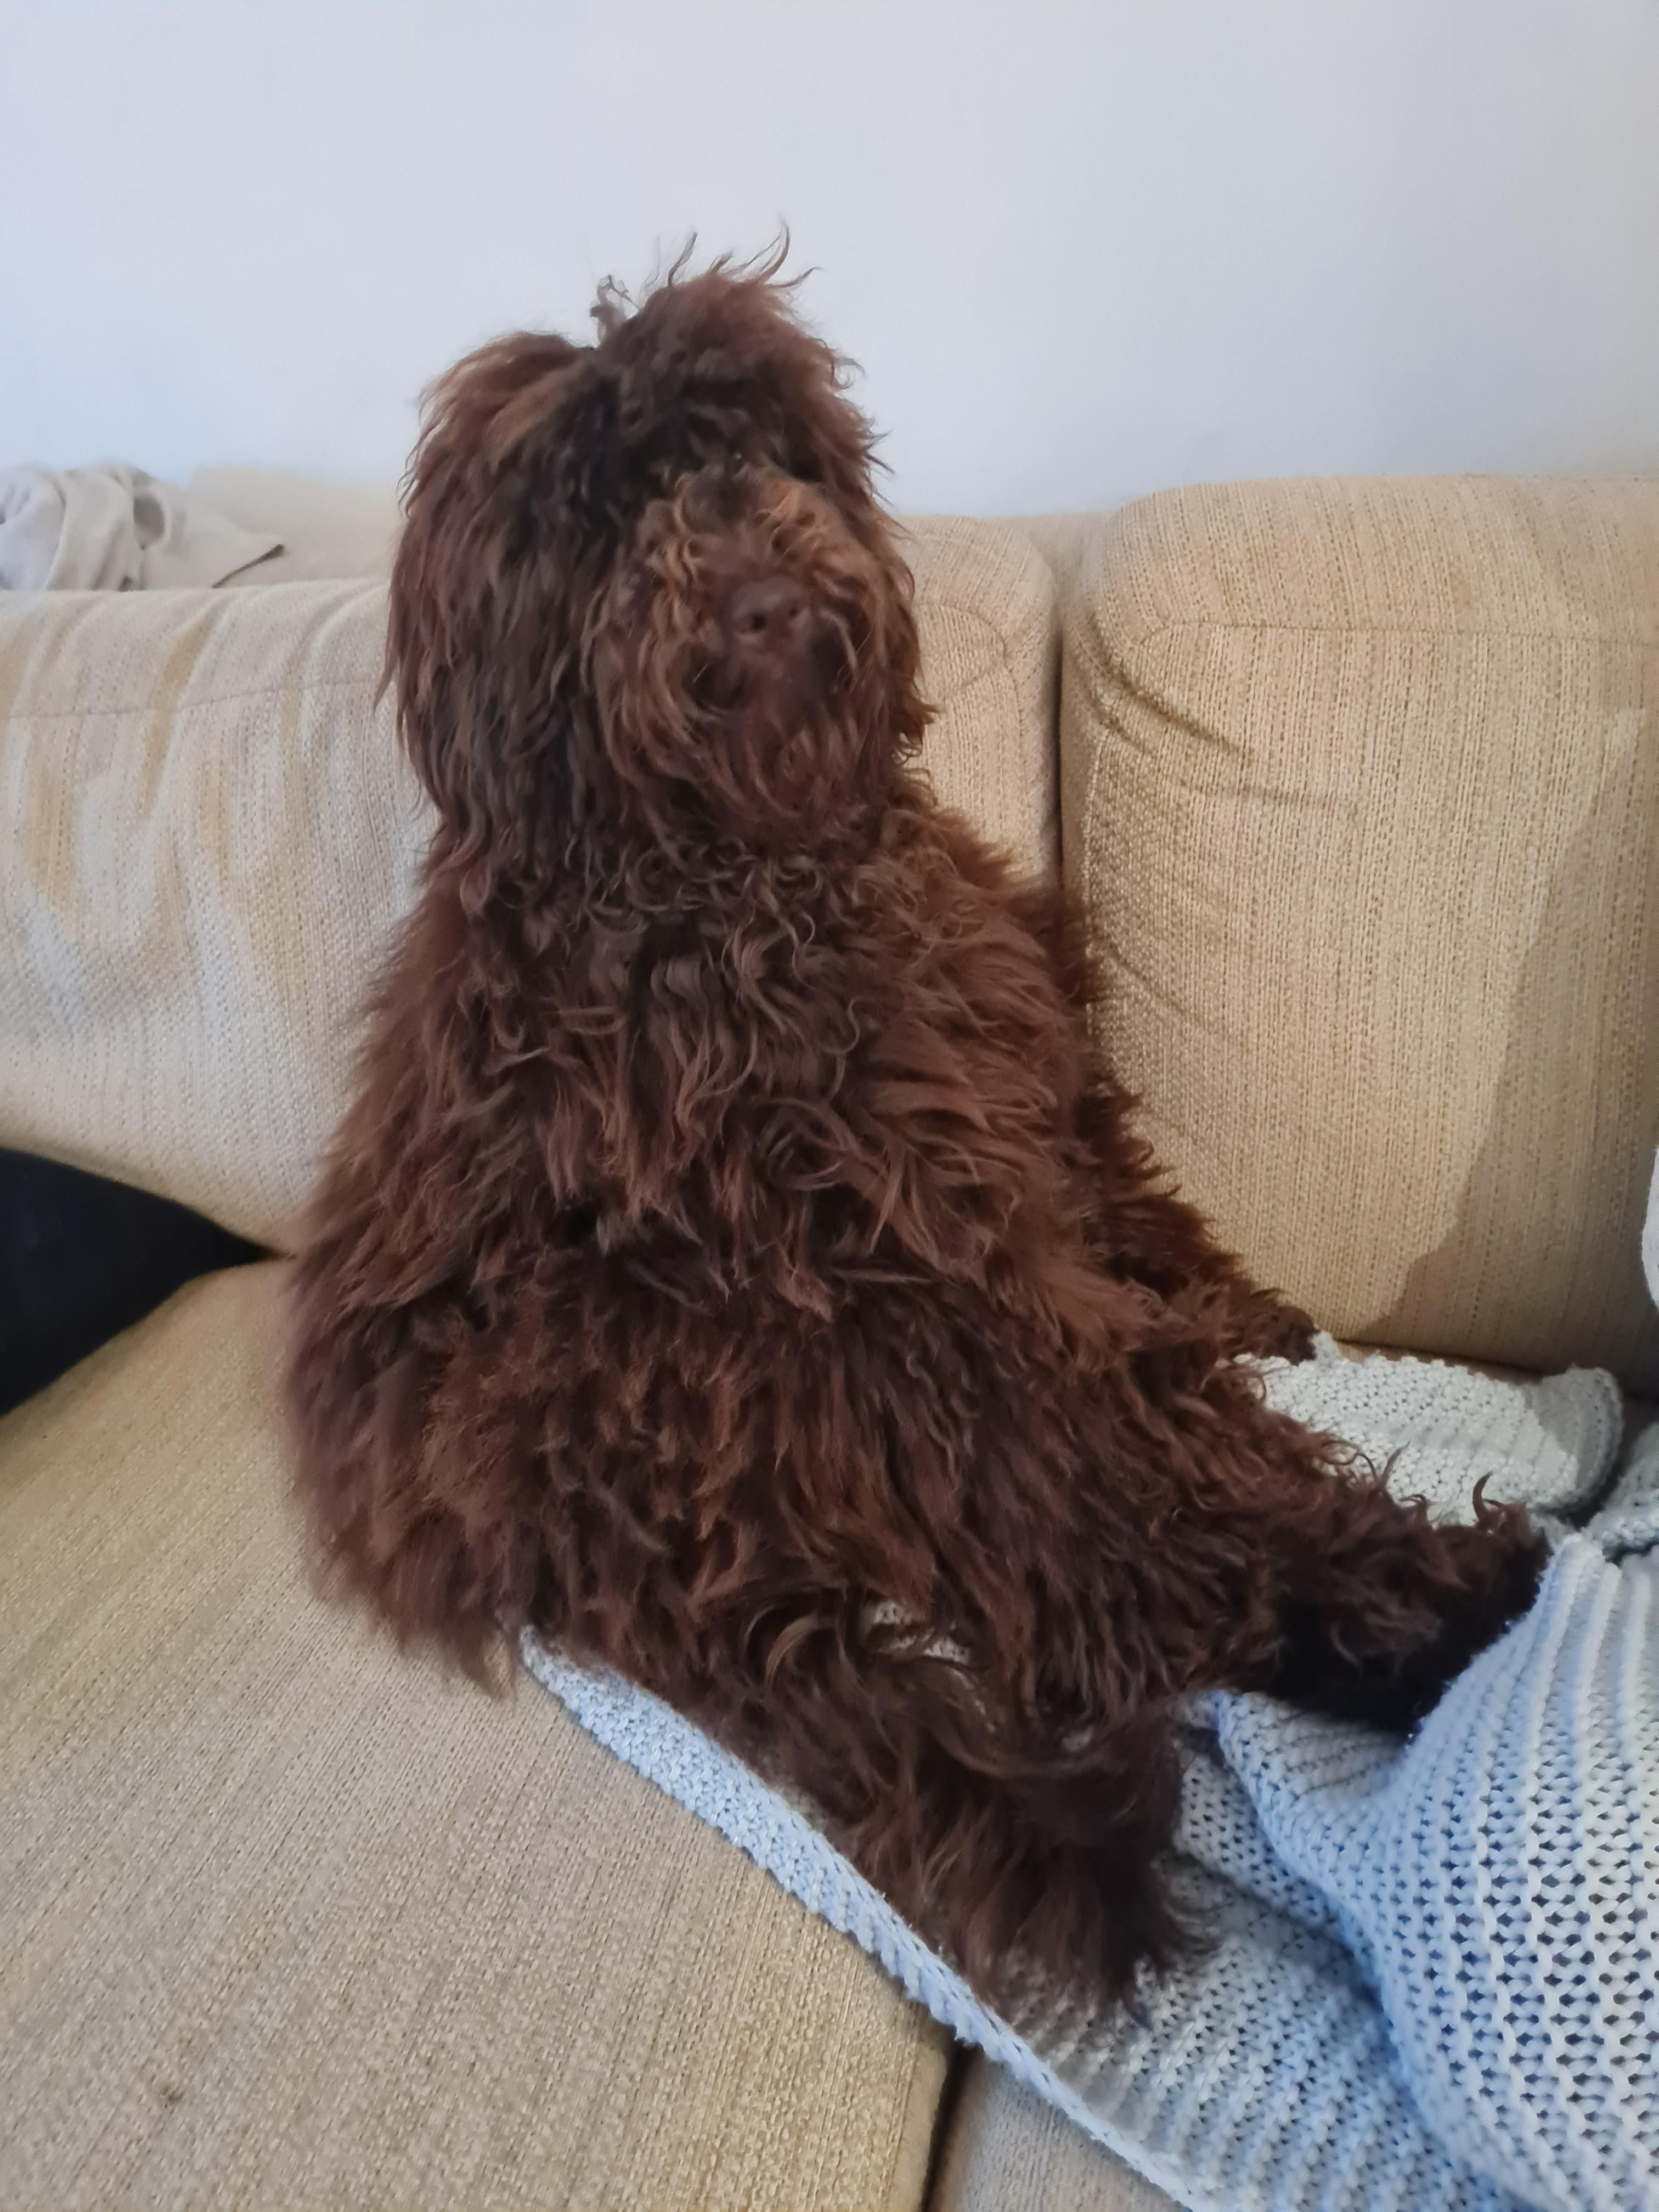 My Labradoodle looking like an overweight Alf had a child with Chewbacca.